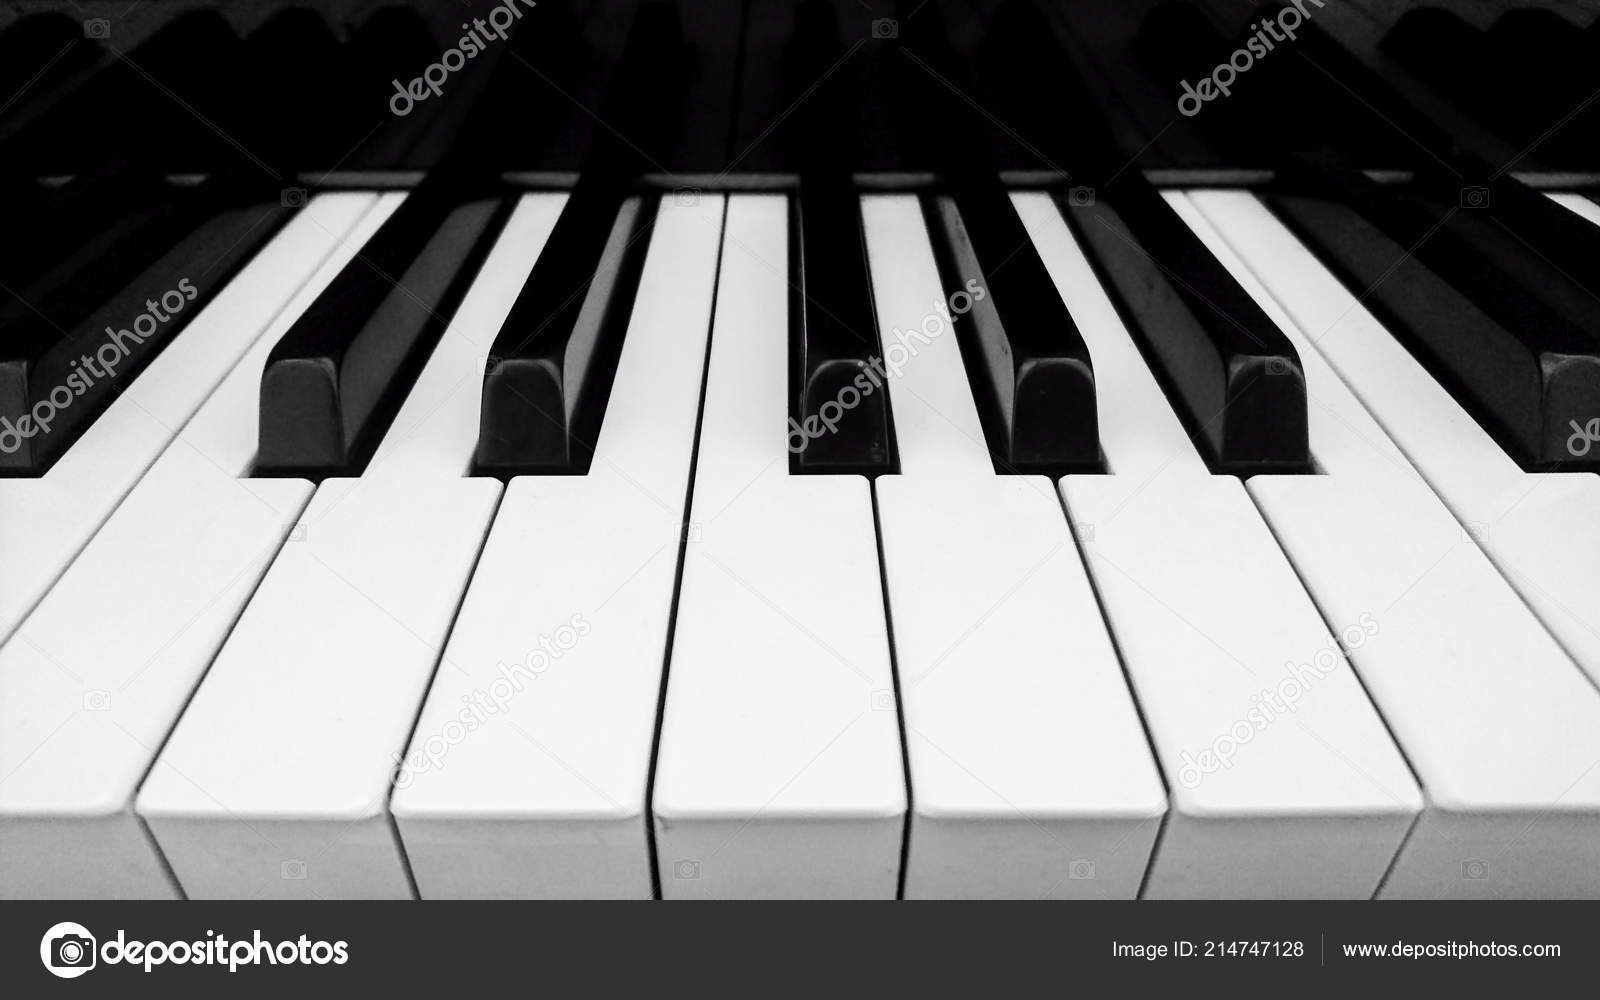 Closeup of piano key in black and white photo by